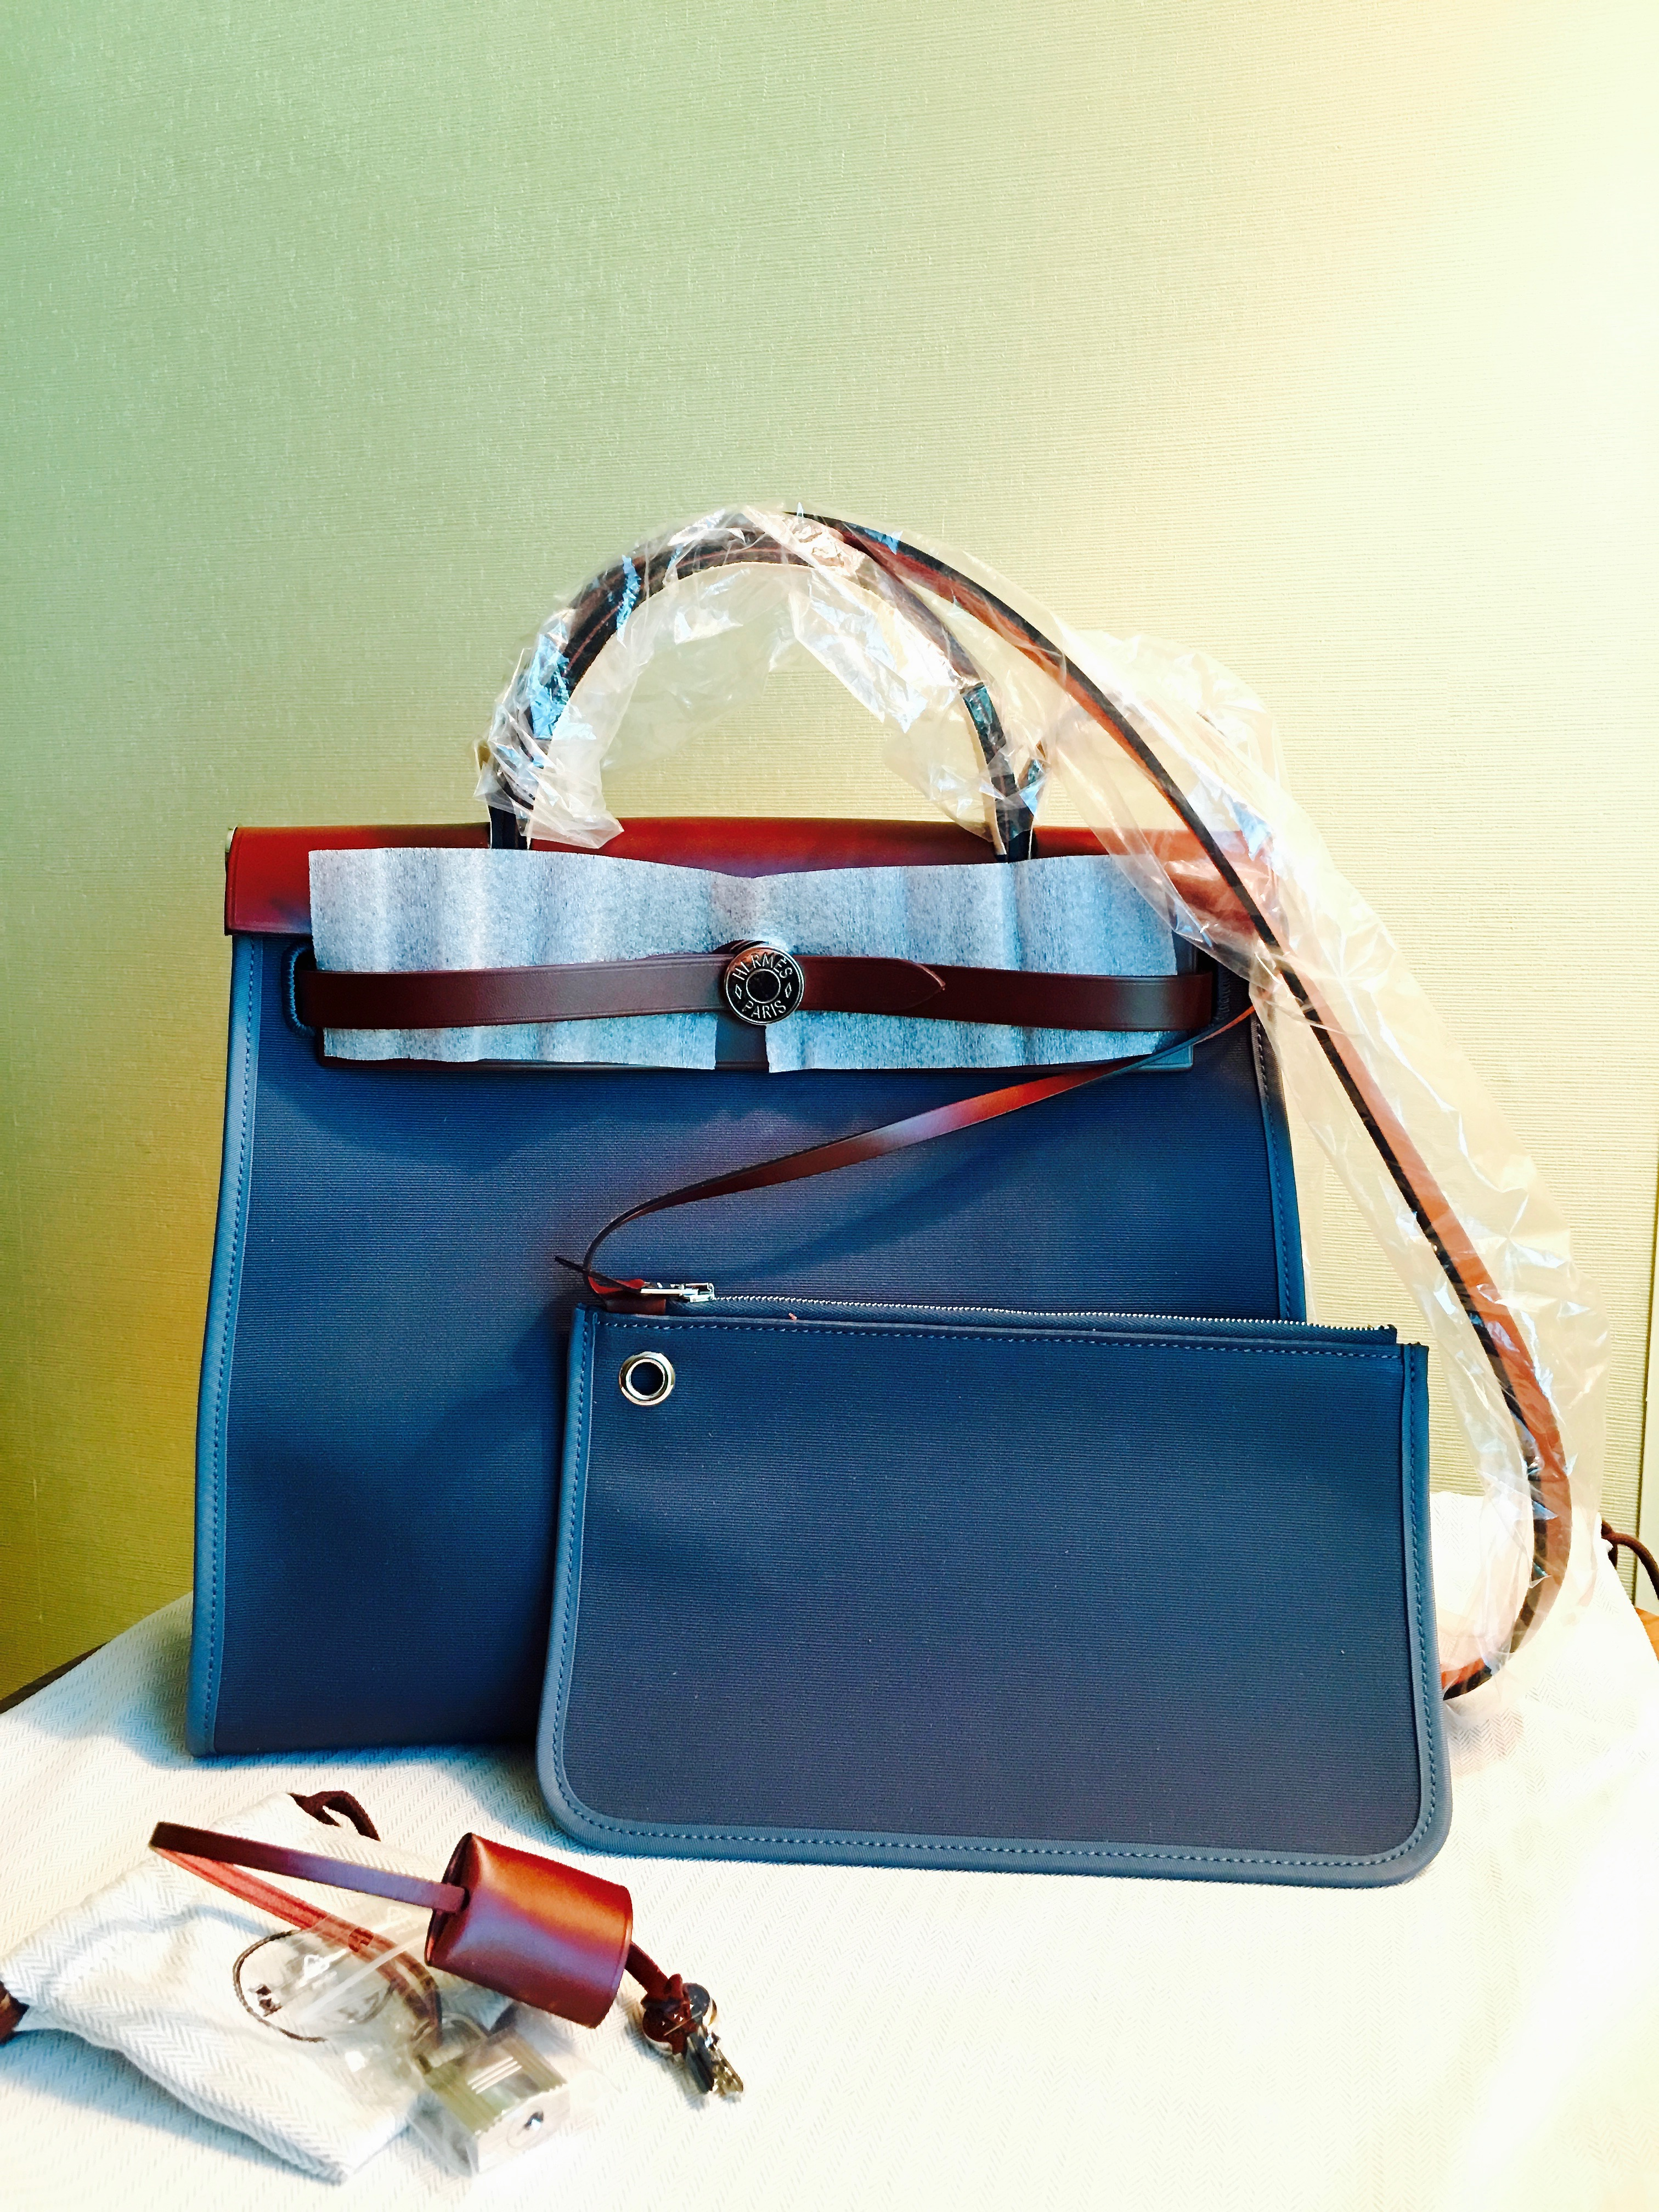 WING CHOI | Herm��s Kelly Sister Bag - Herm��s Herbag